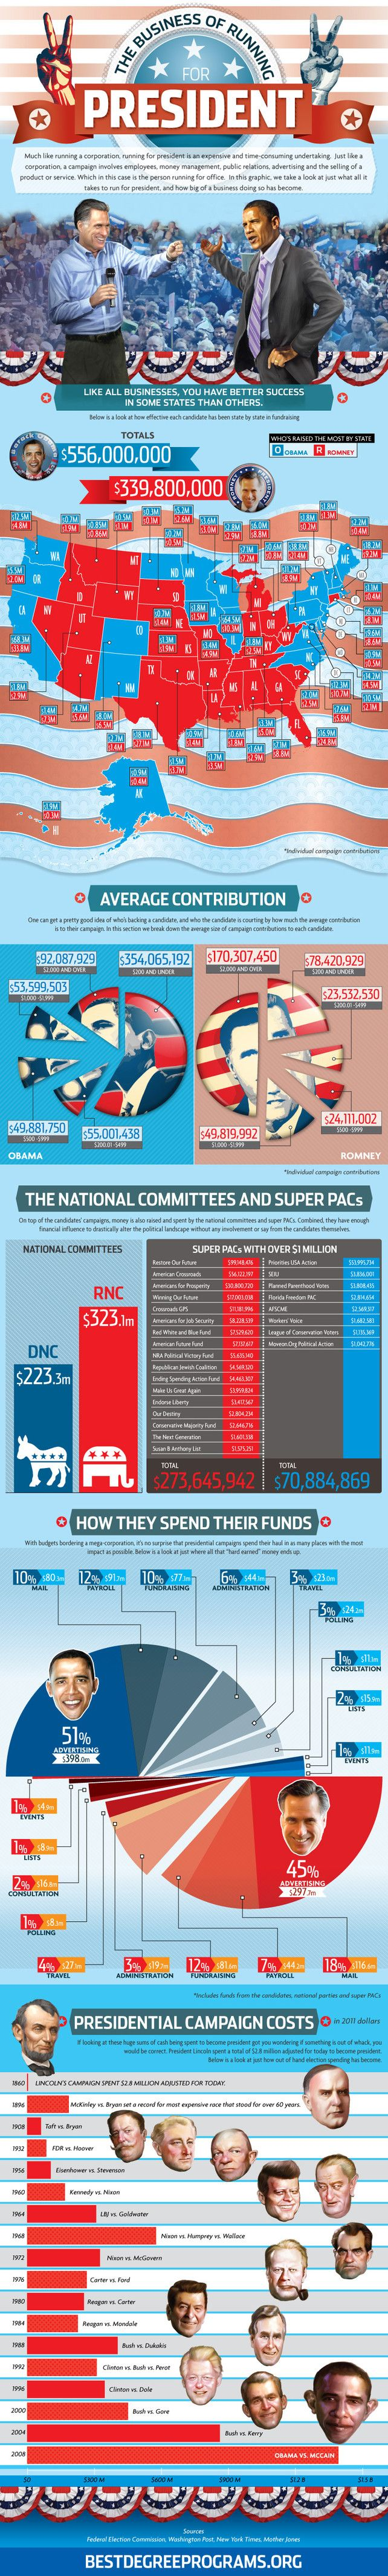 Infographic: How Both Presidential Candidates Grossly Outspent Their Predecessors | Co.Design: business + innovation + design